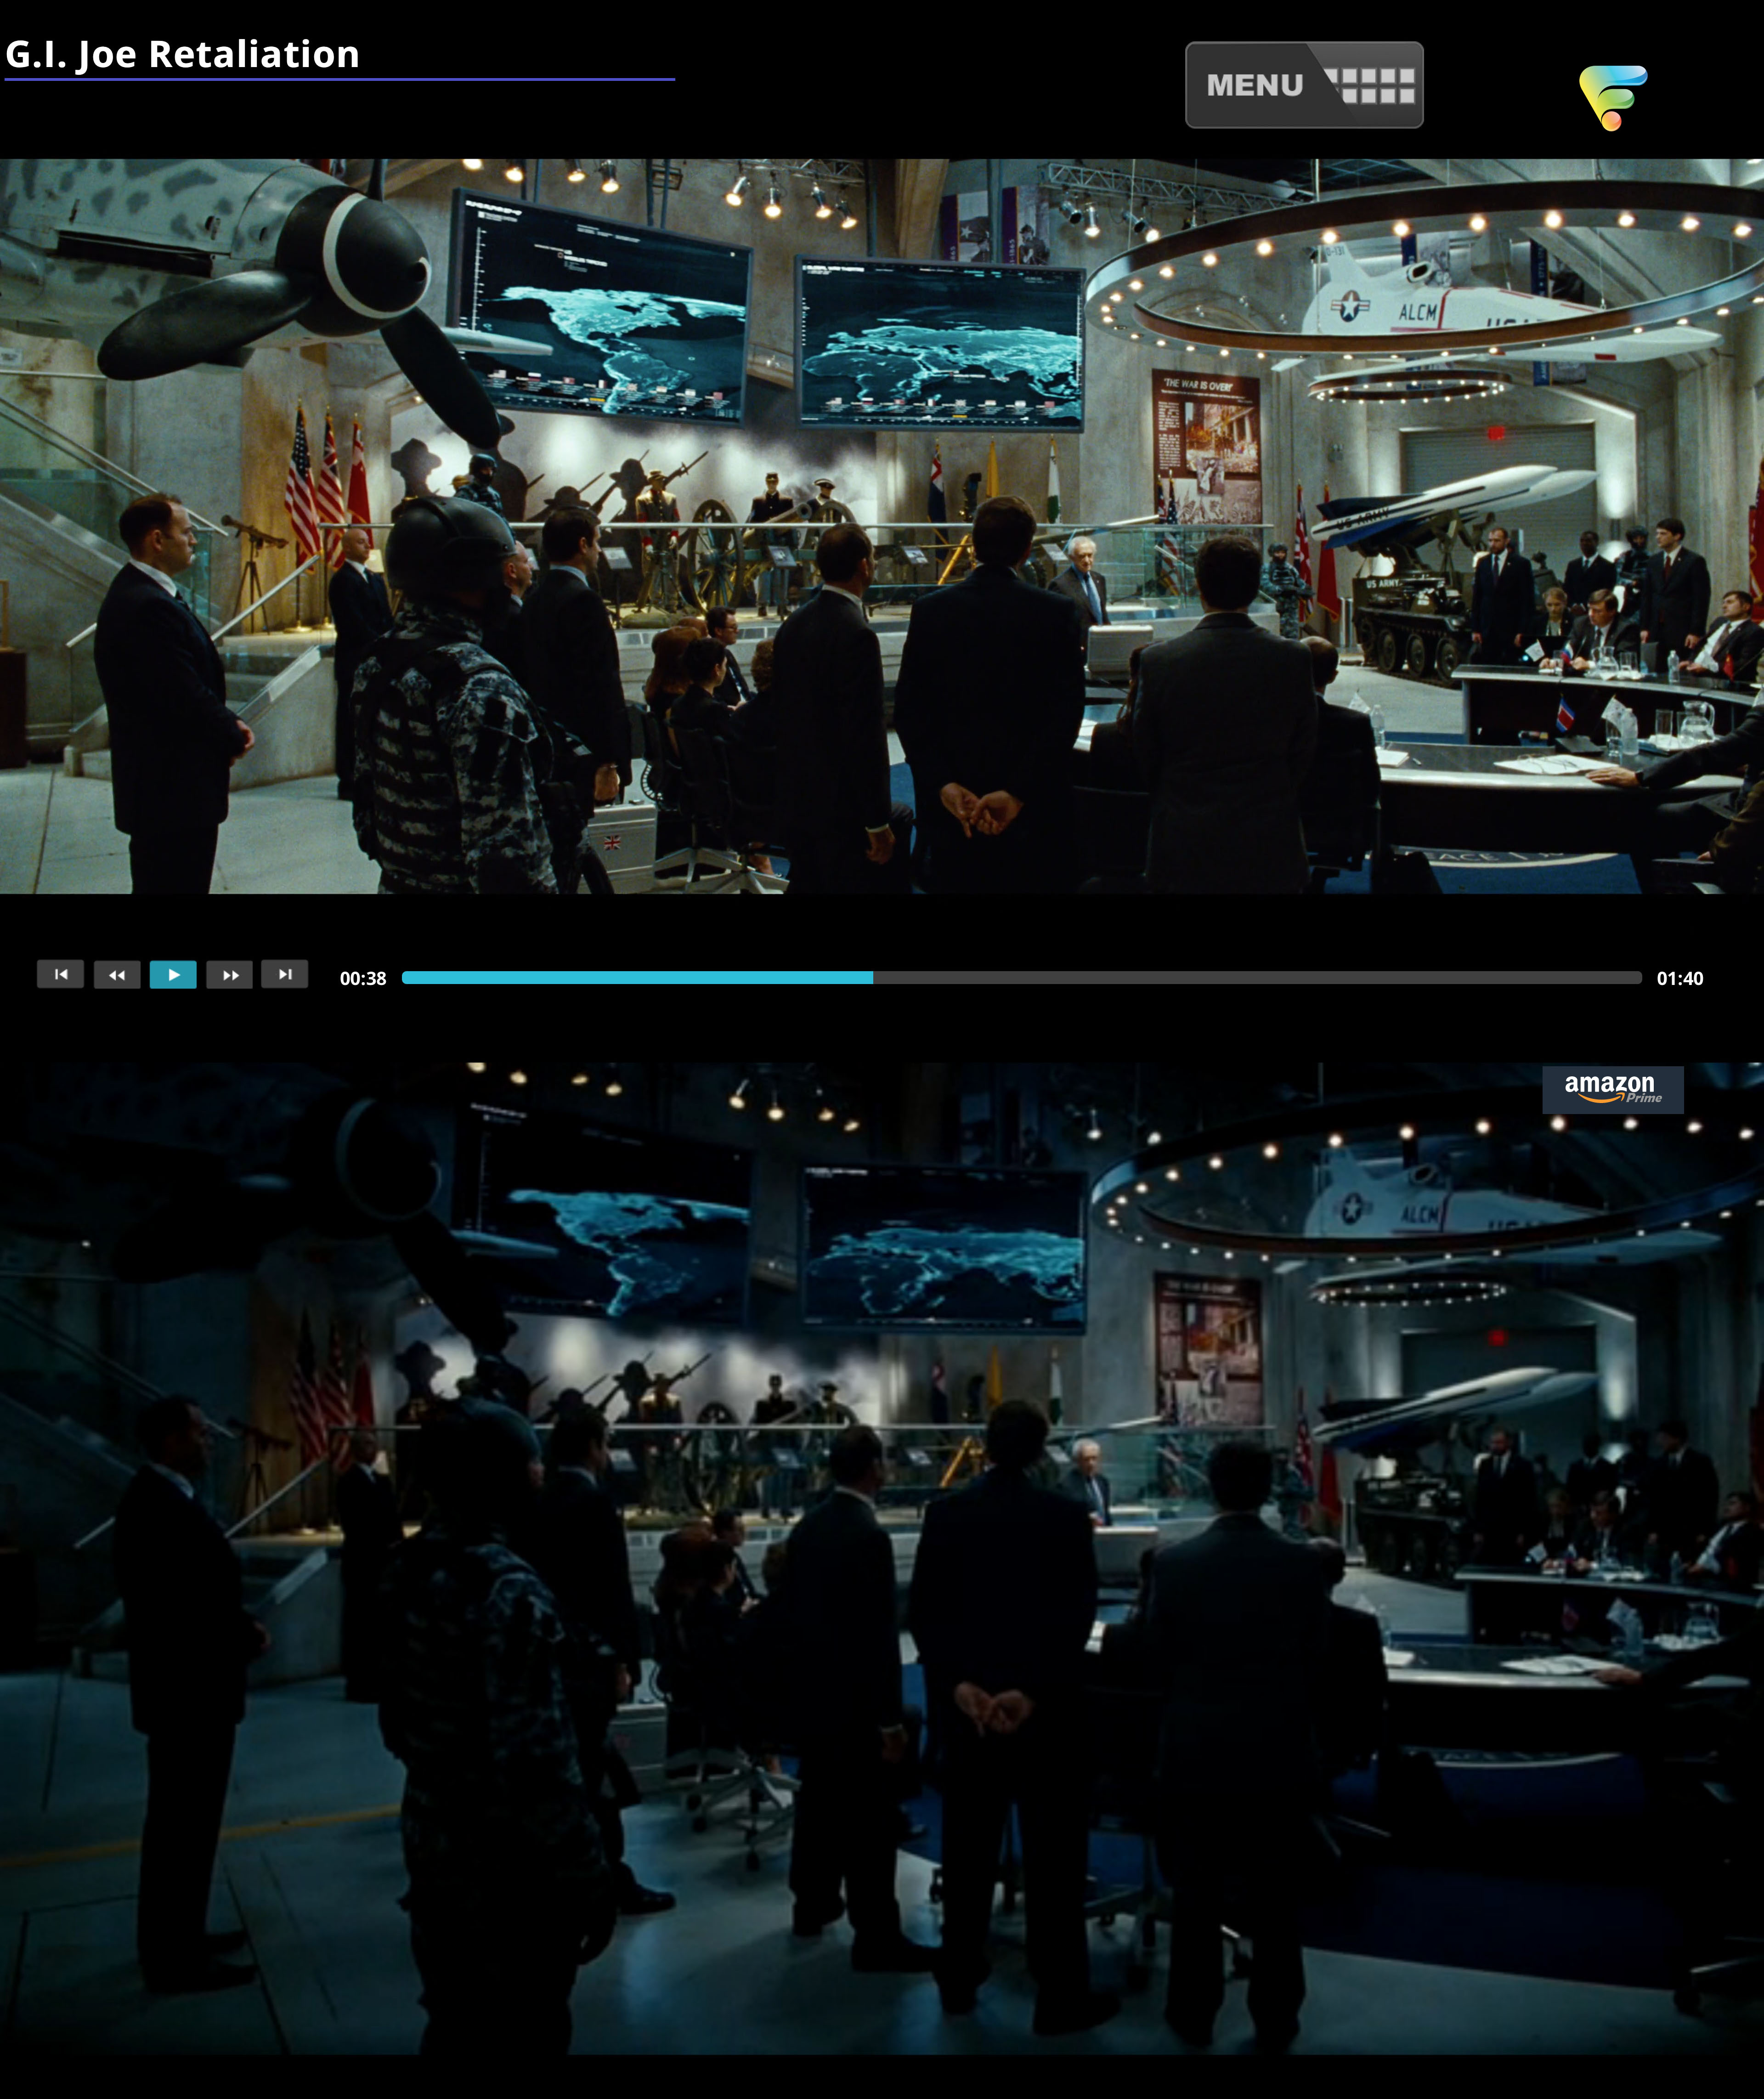 GI Joe Retaliation Compared to Amazon Prime